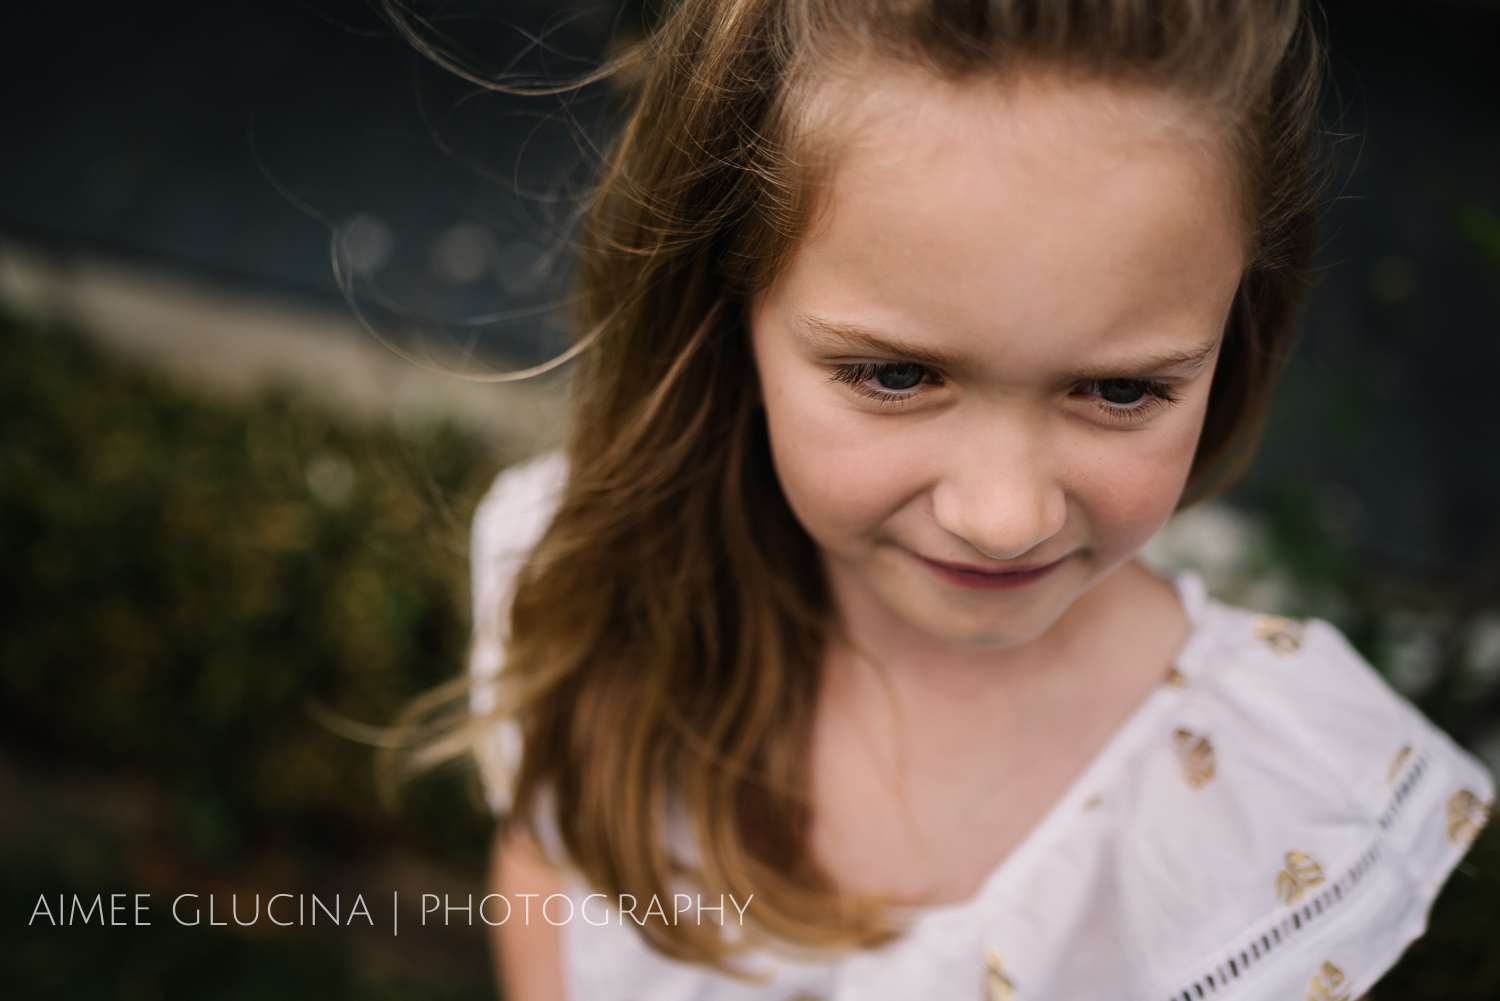 Baudinet Family Session by Aimee Glucina Photography-12.jpg